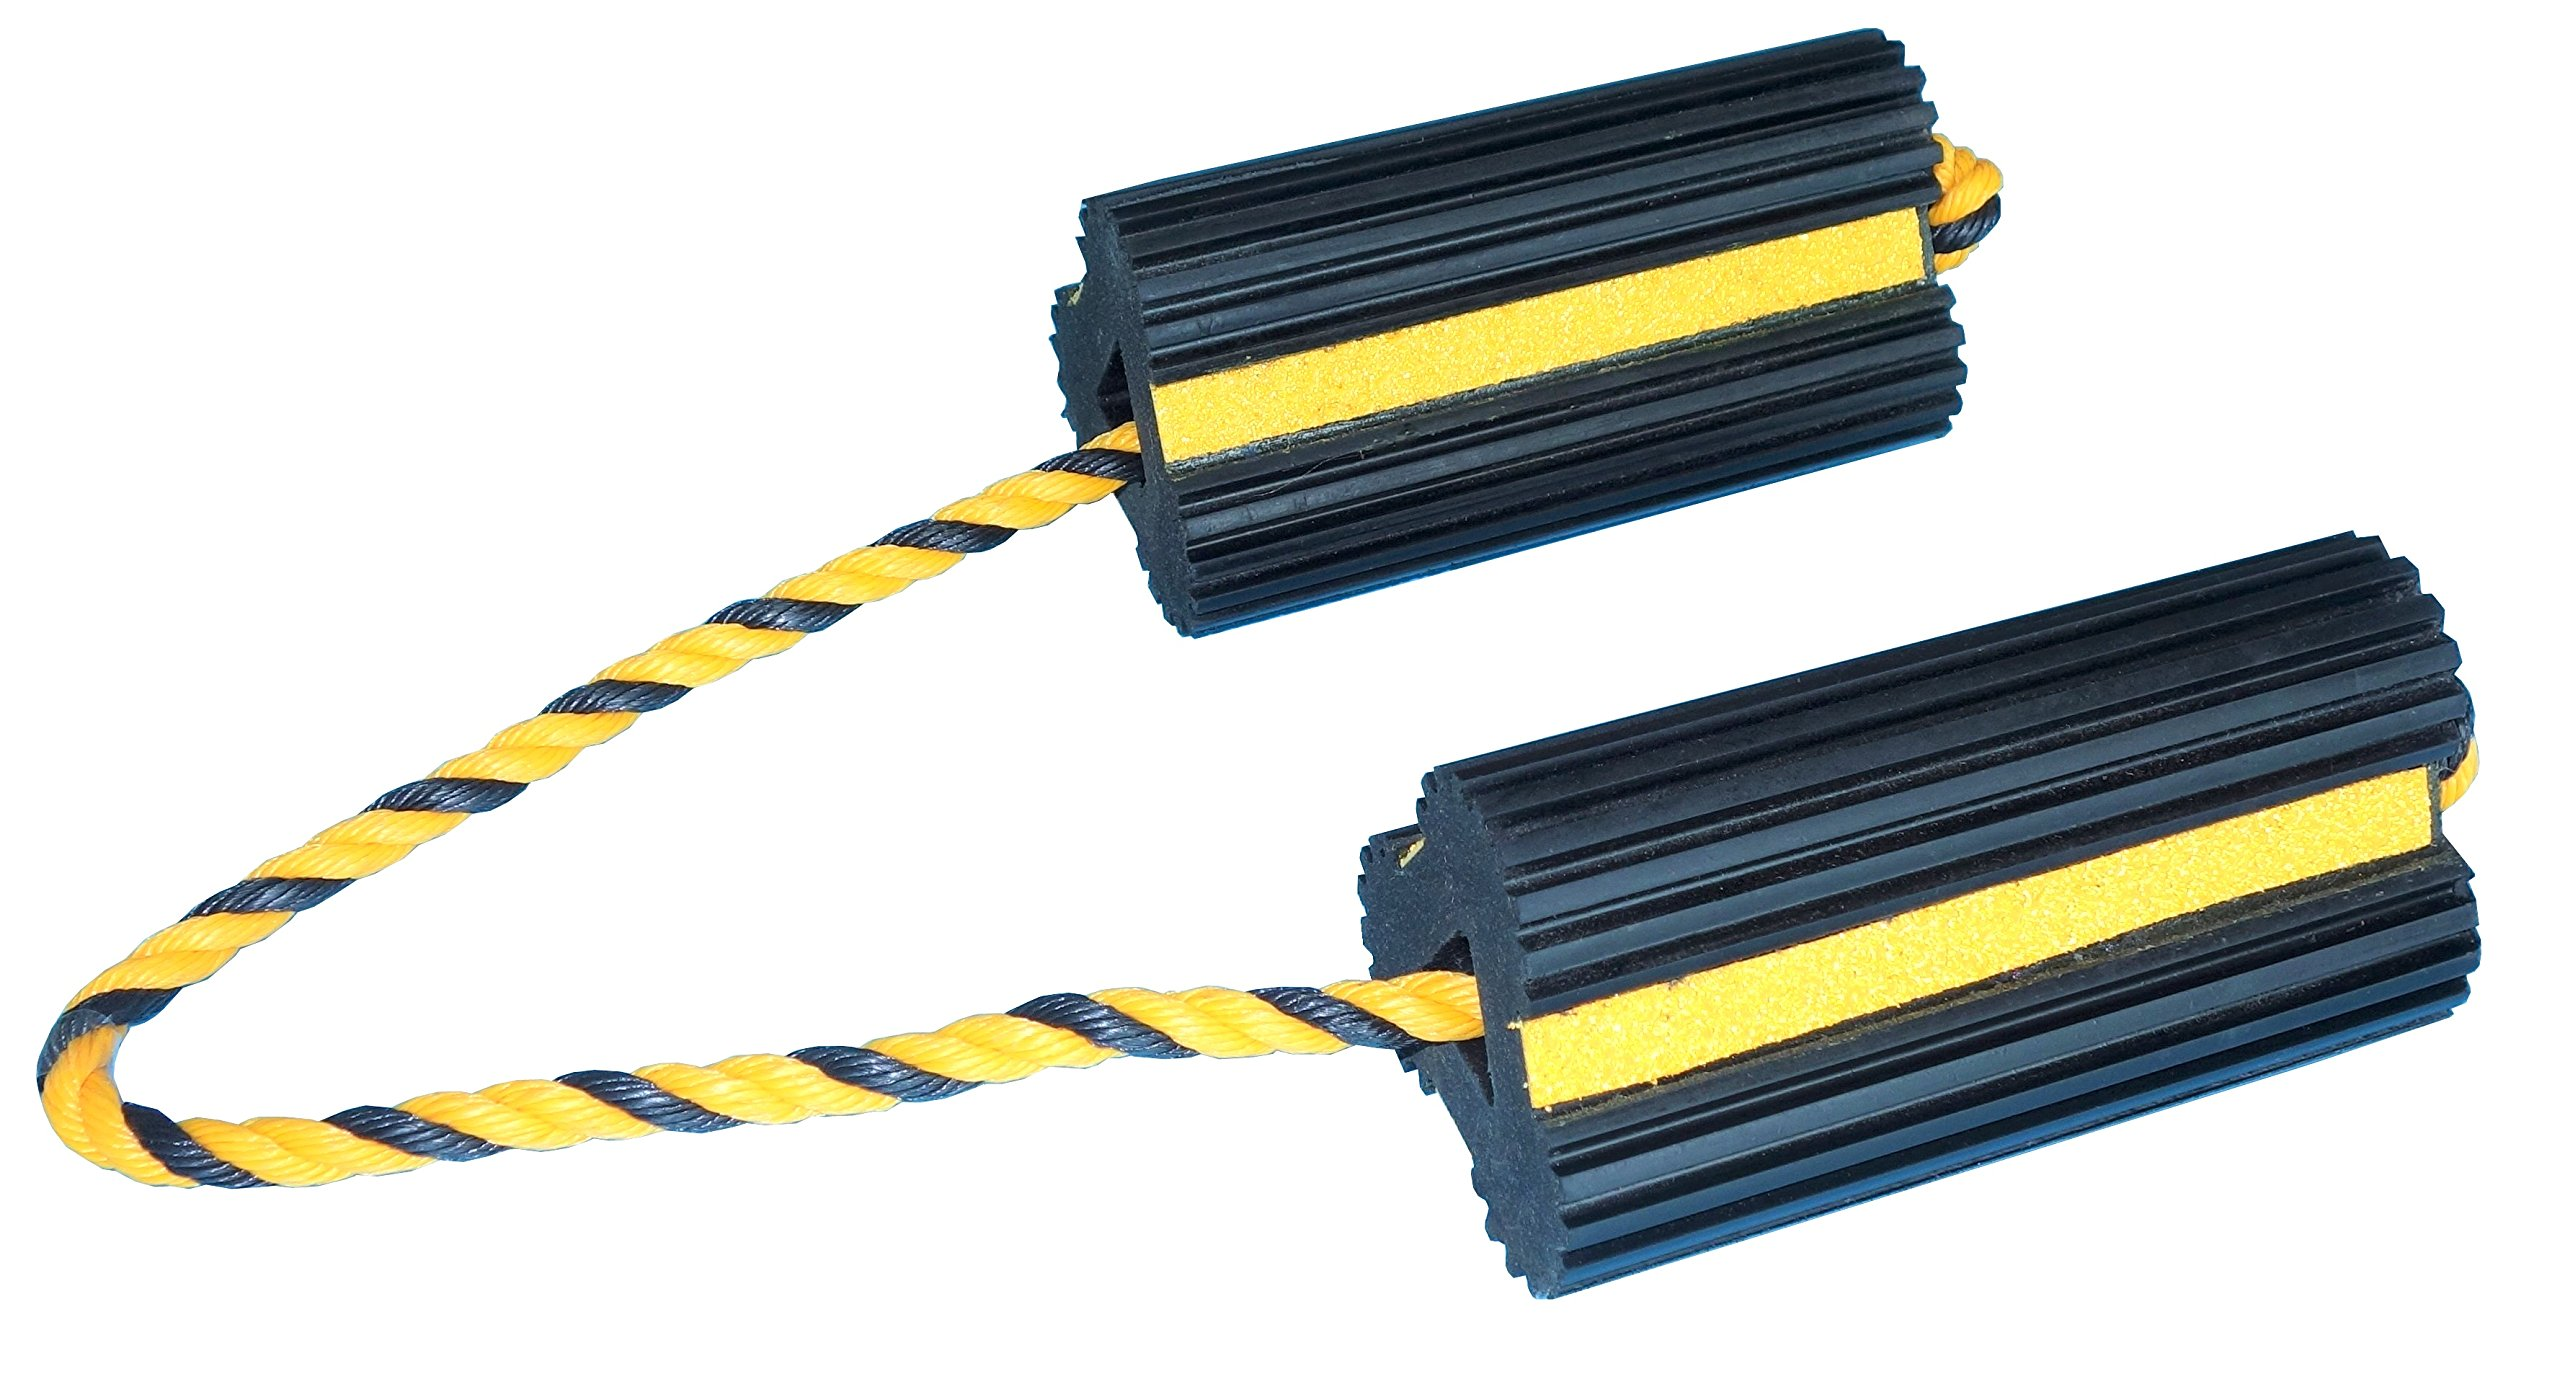 YM W4255 Extruded Rubber Wheel Chock with Rope, 8'' Width, 4'' Height, 4-1/2'' Depth